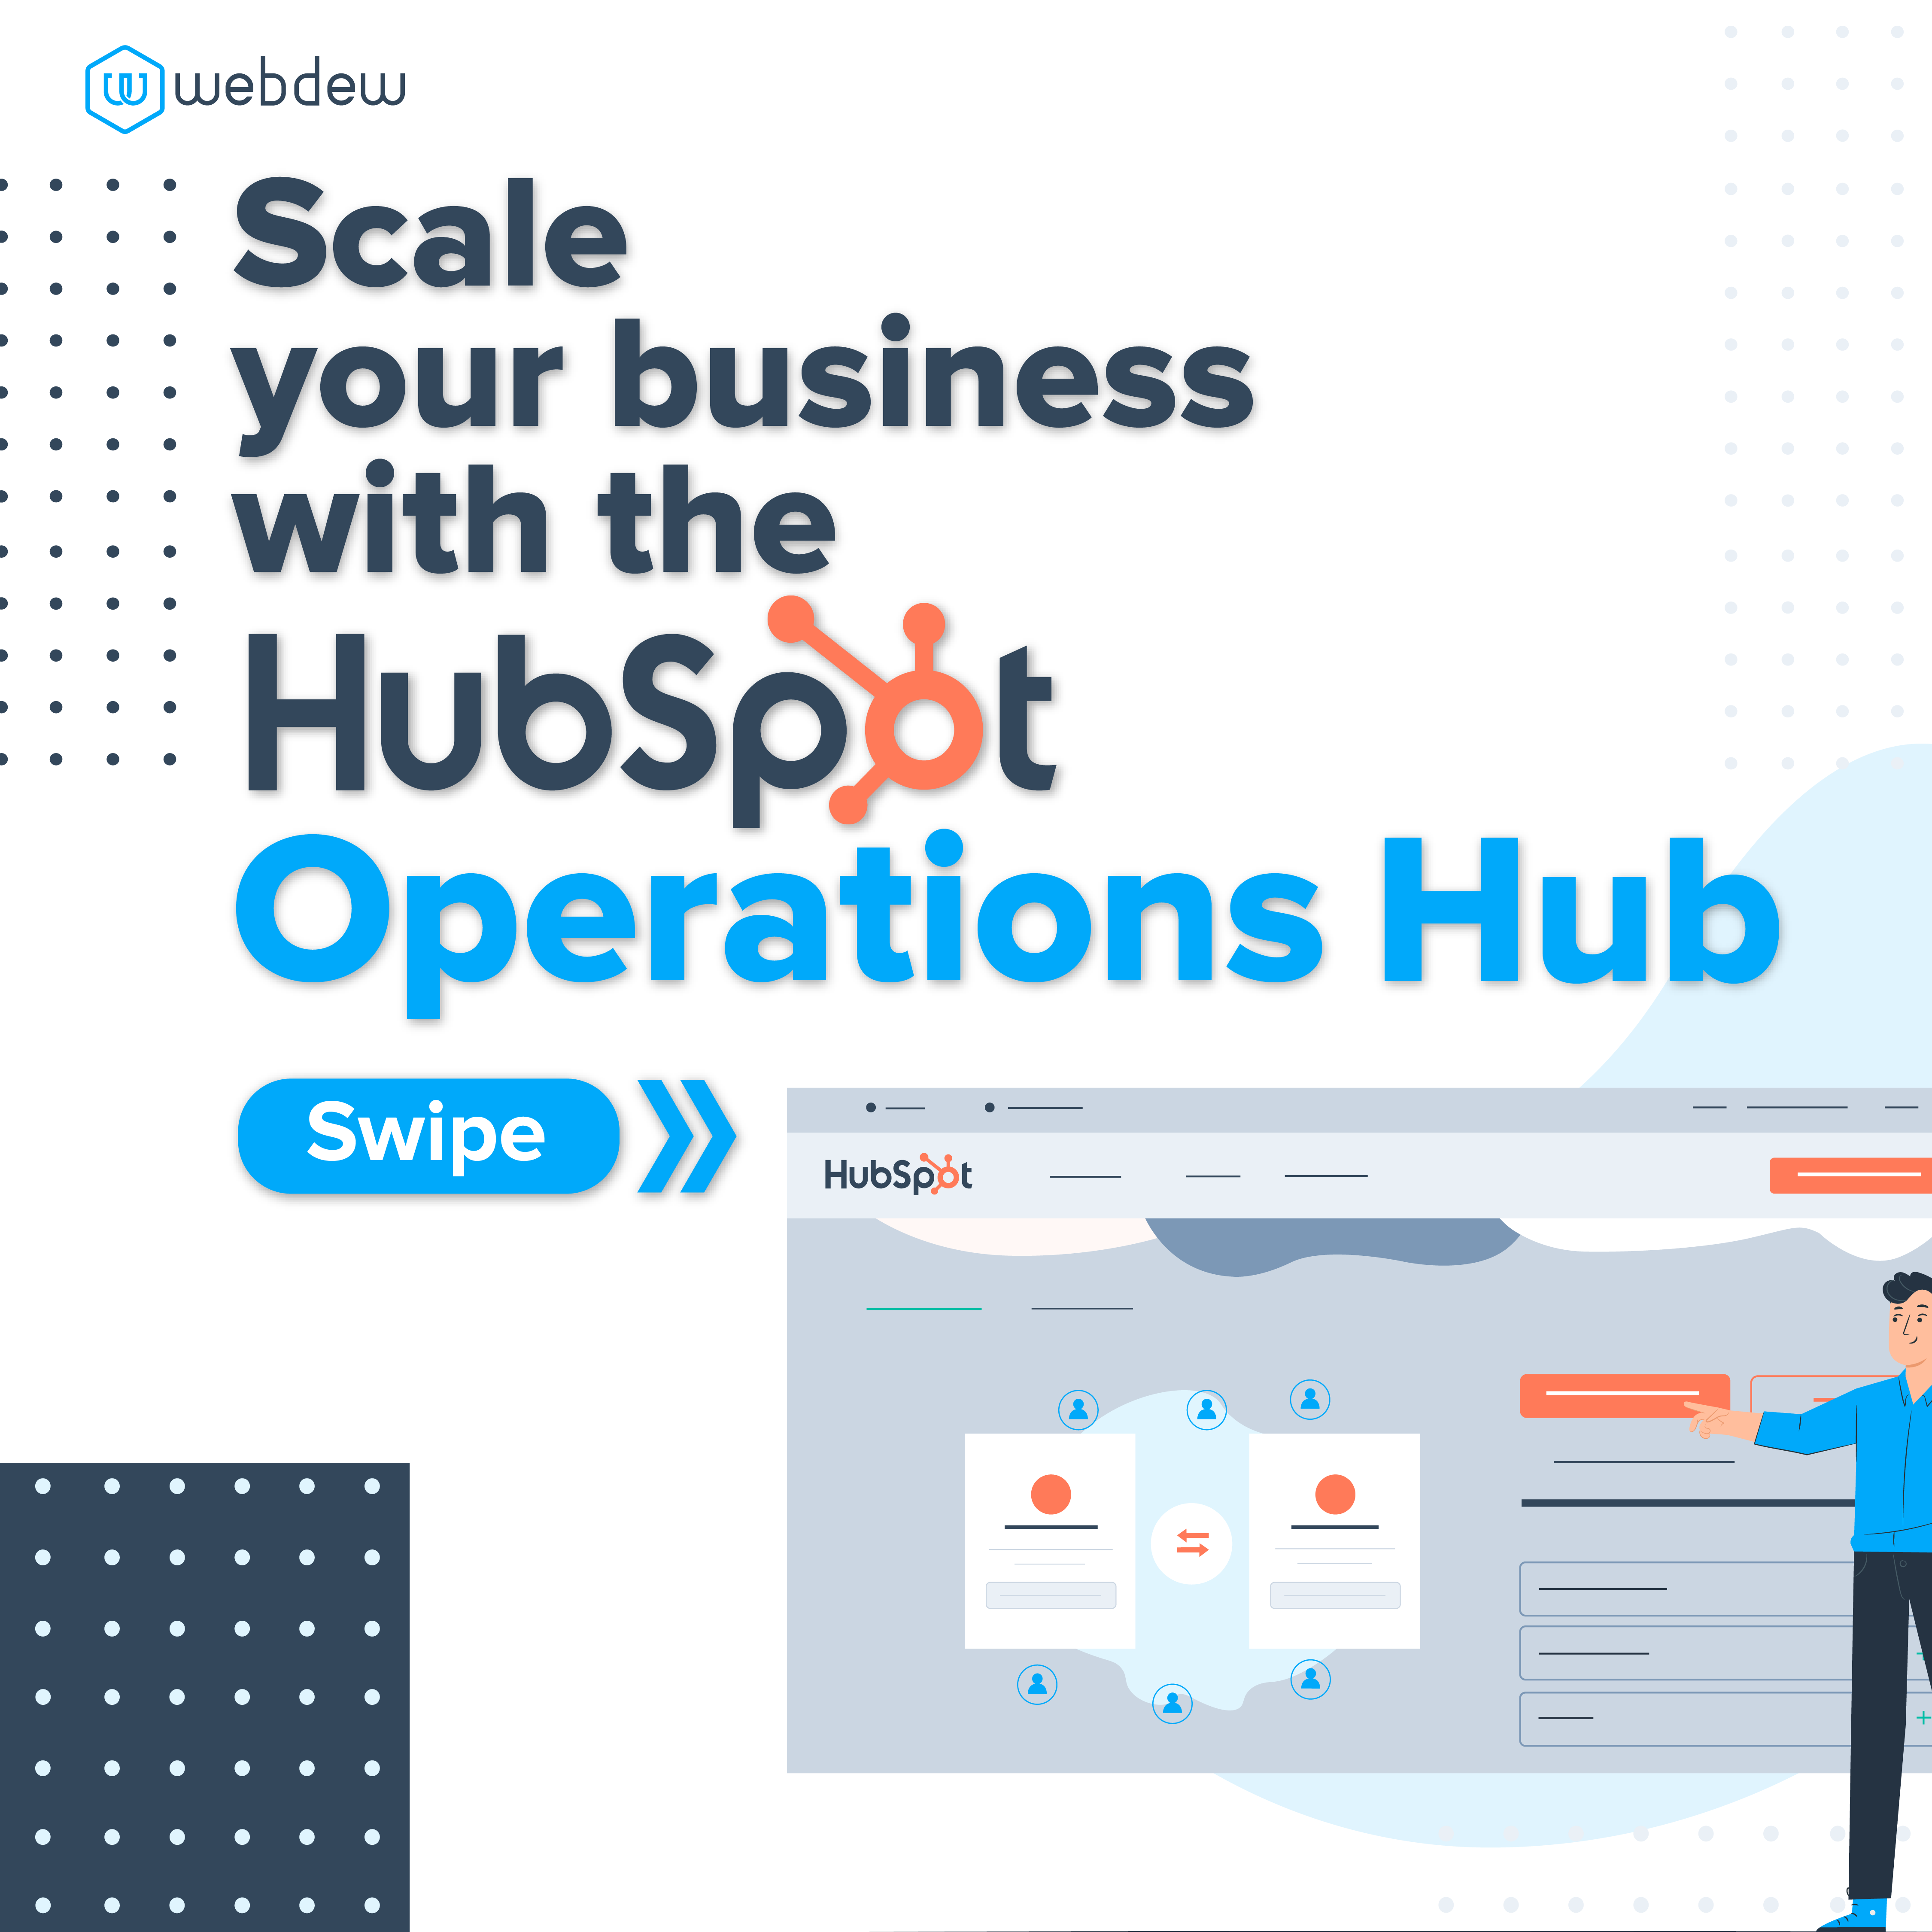 1- scale your business with the hubspot operations hub